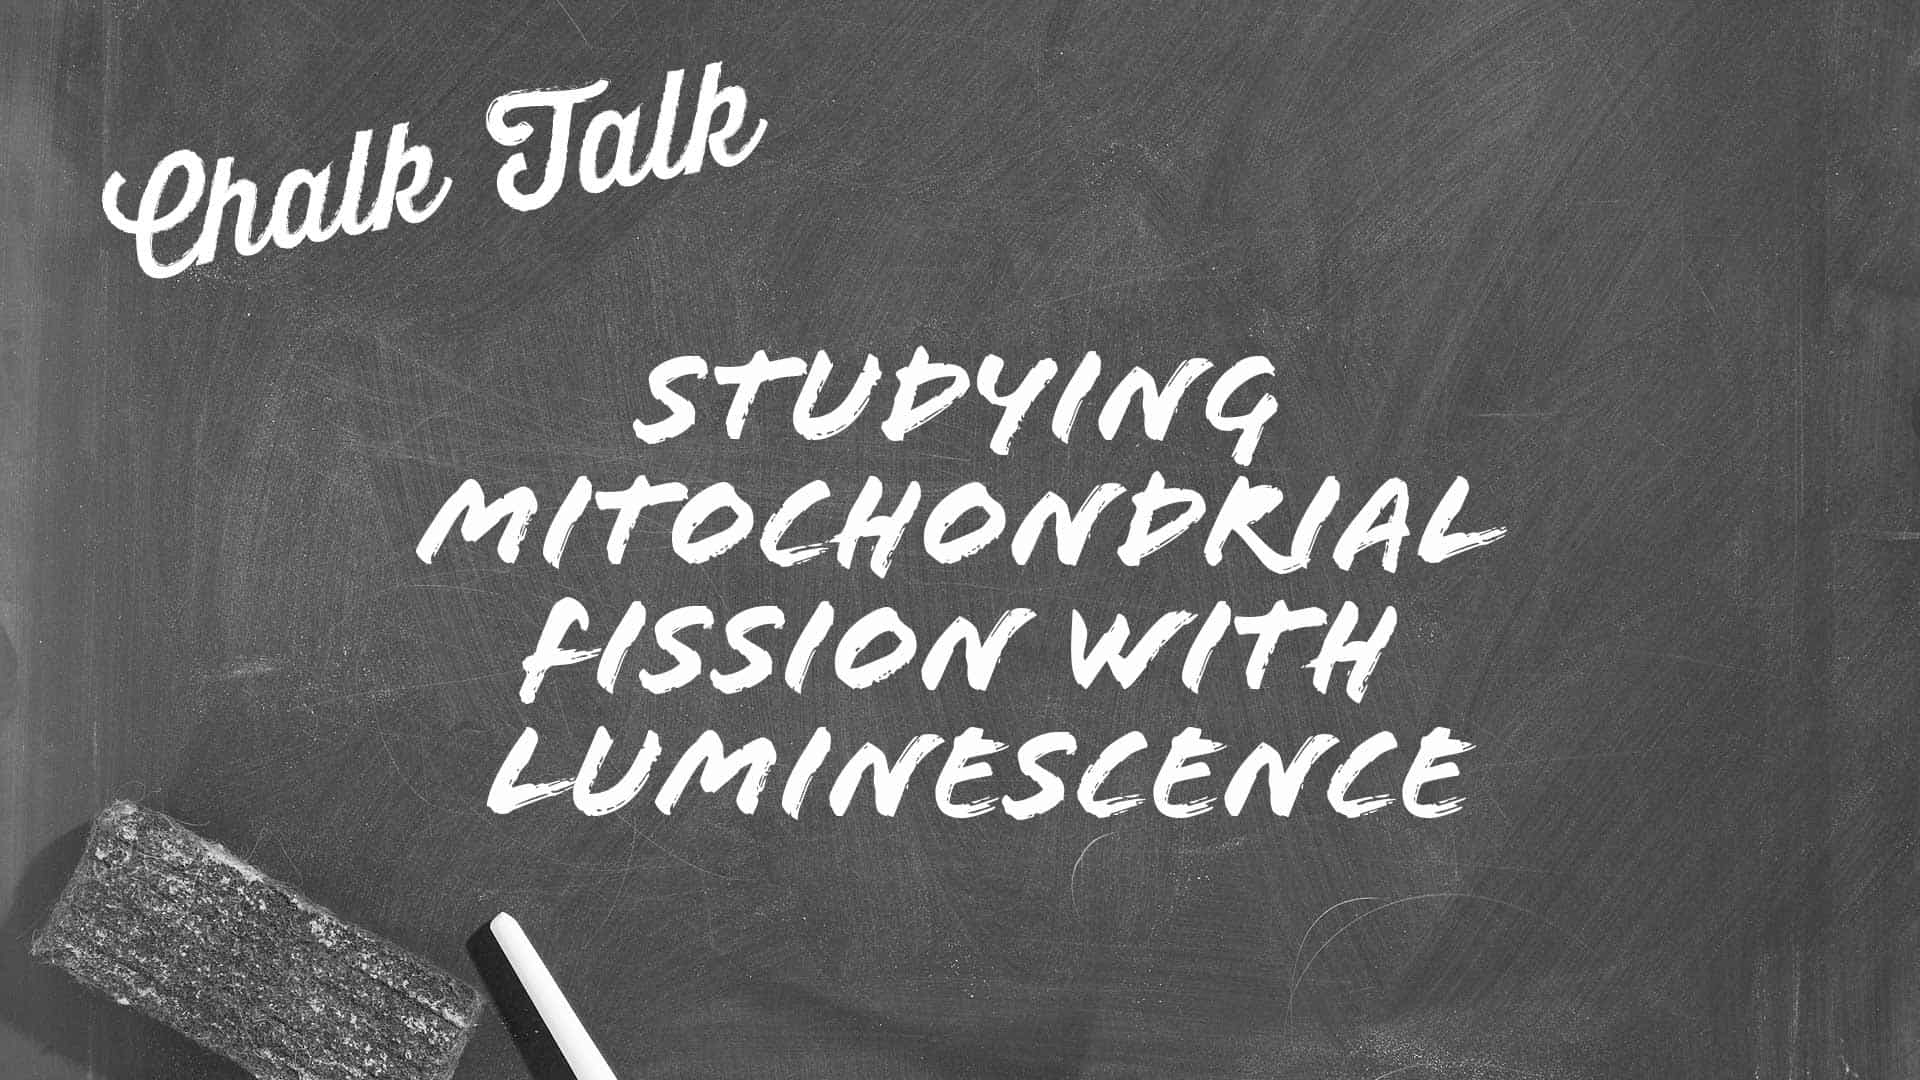 Chalk Talk on Studying Mitochondrial Fission with NanoBiT